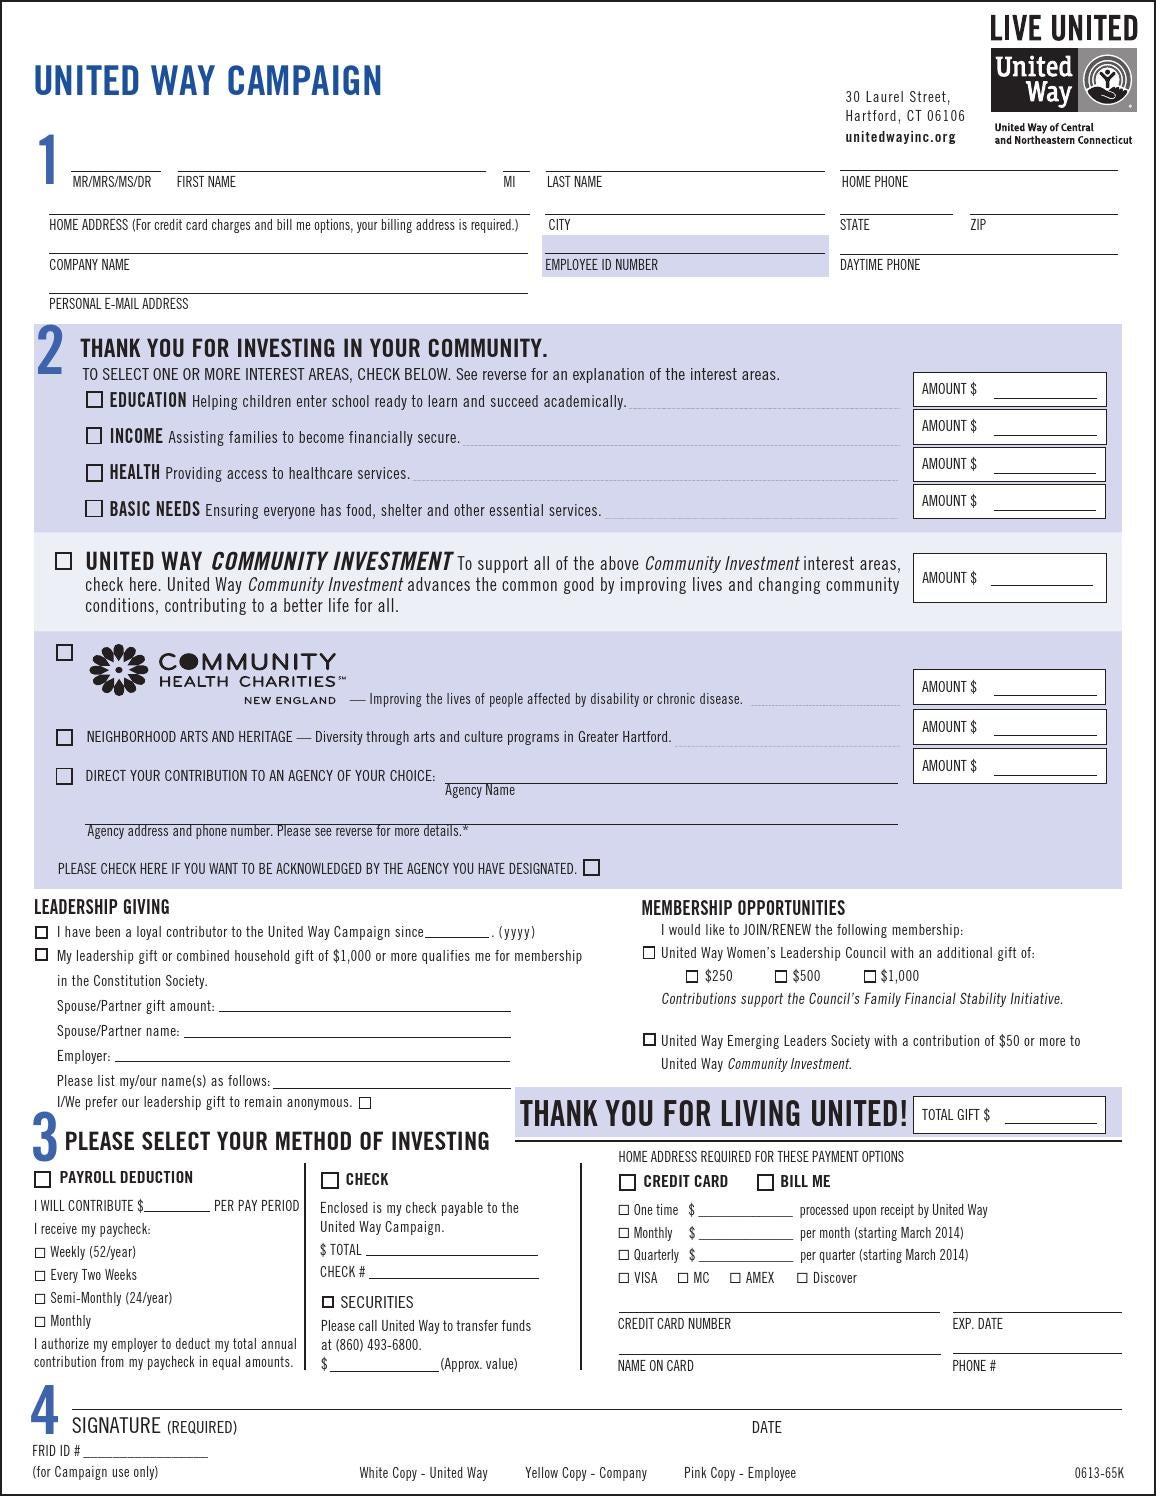 United Way Campaign Pledge Form 2013 By United Way Of